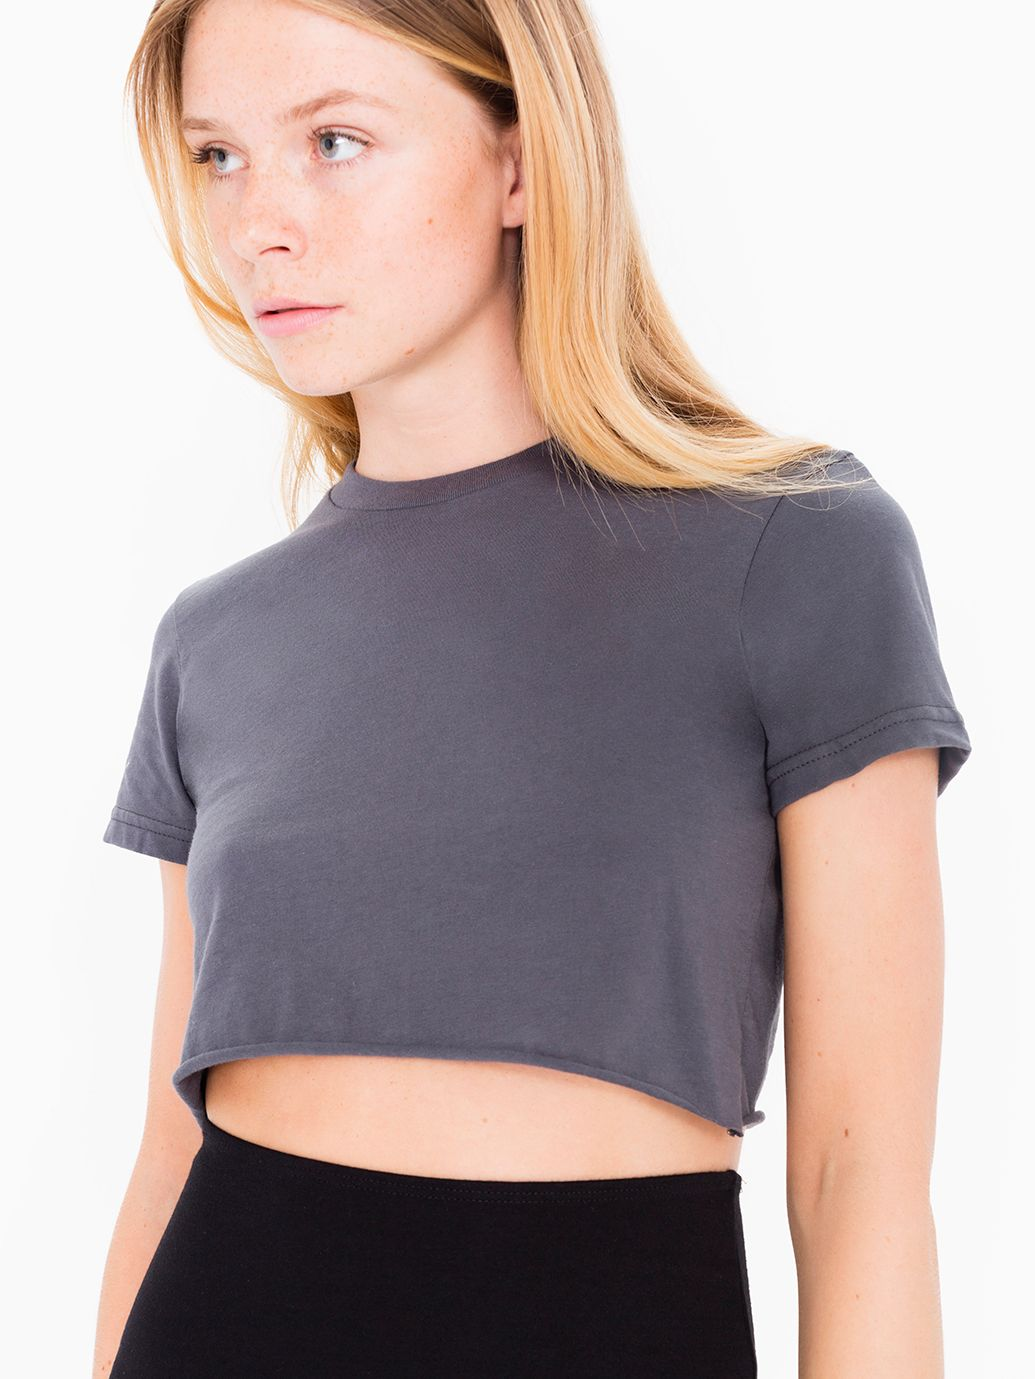 888113c5e53 Tops - Tops All-Teen-Clothing is a great spot to shop for clothes ...